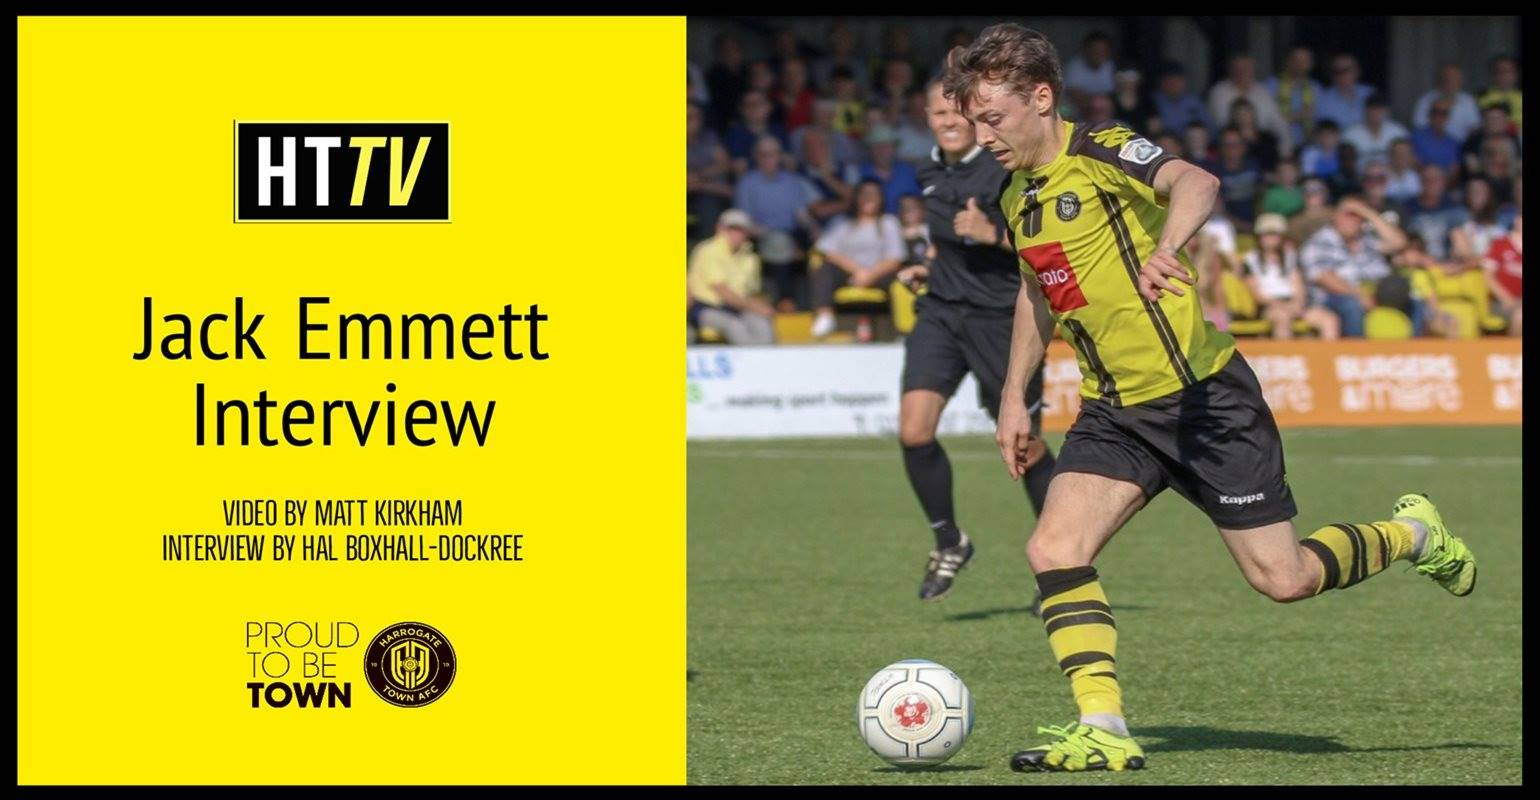 HTTV | Jack Emmett Interview